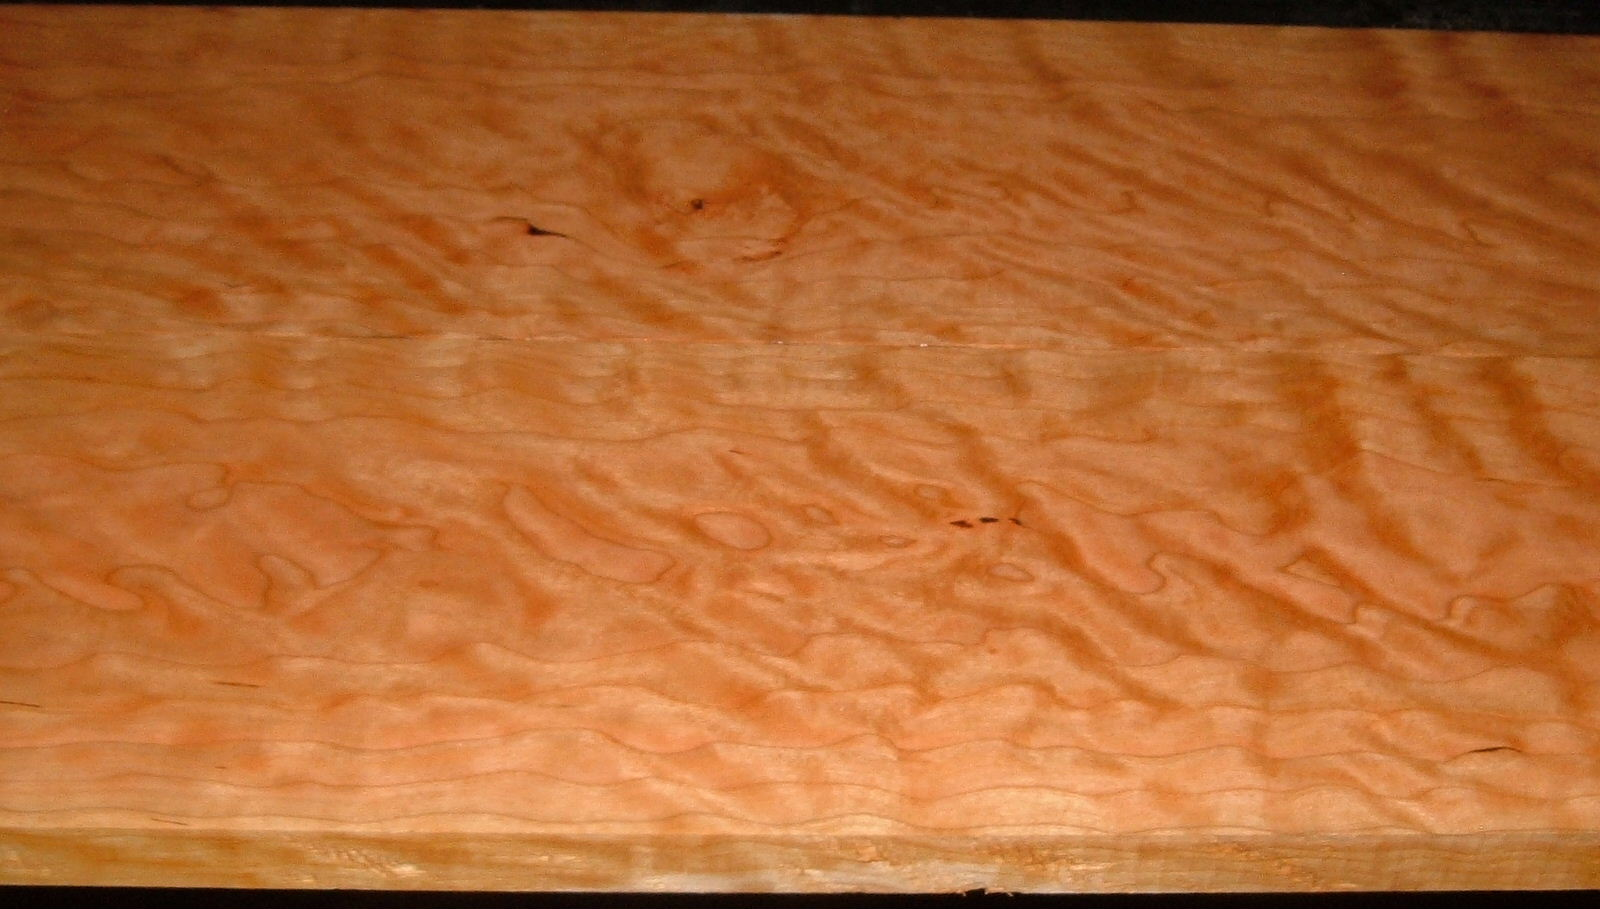 C2004-81,15/16x7-1/4x57, 7/8x7-1/4x57, Curly Figured Cherry, (cut from same plank)